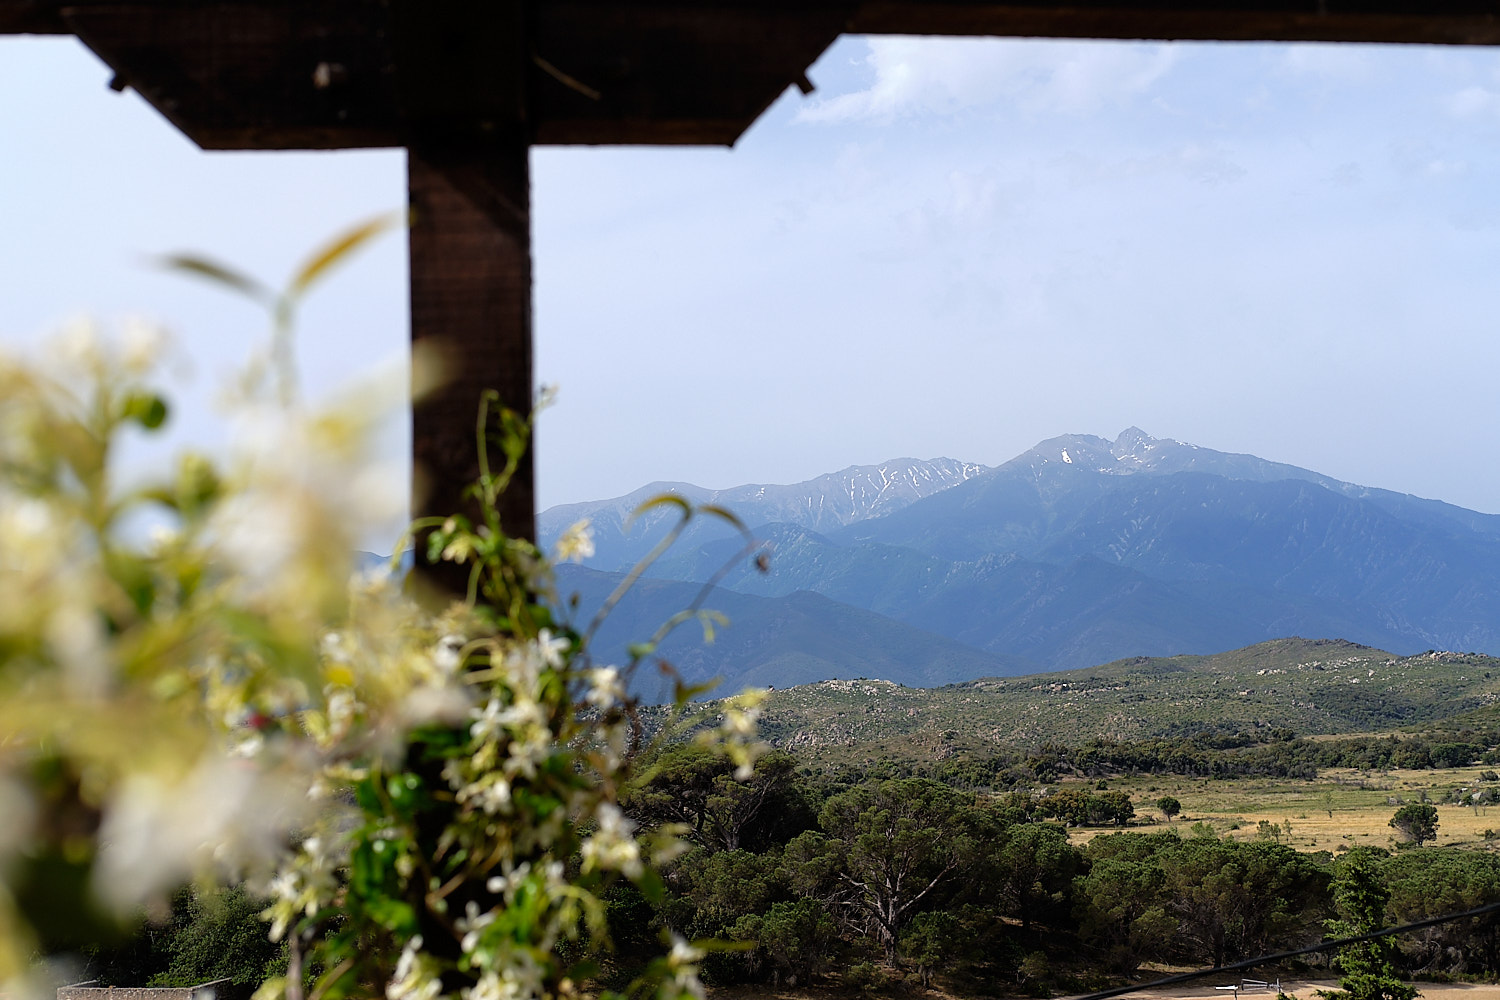 View of the Canigou, Montalba-le-Chateau, Languedoc